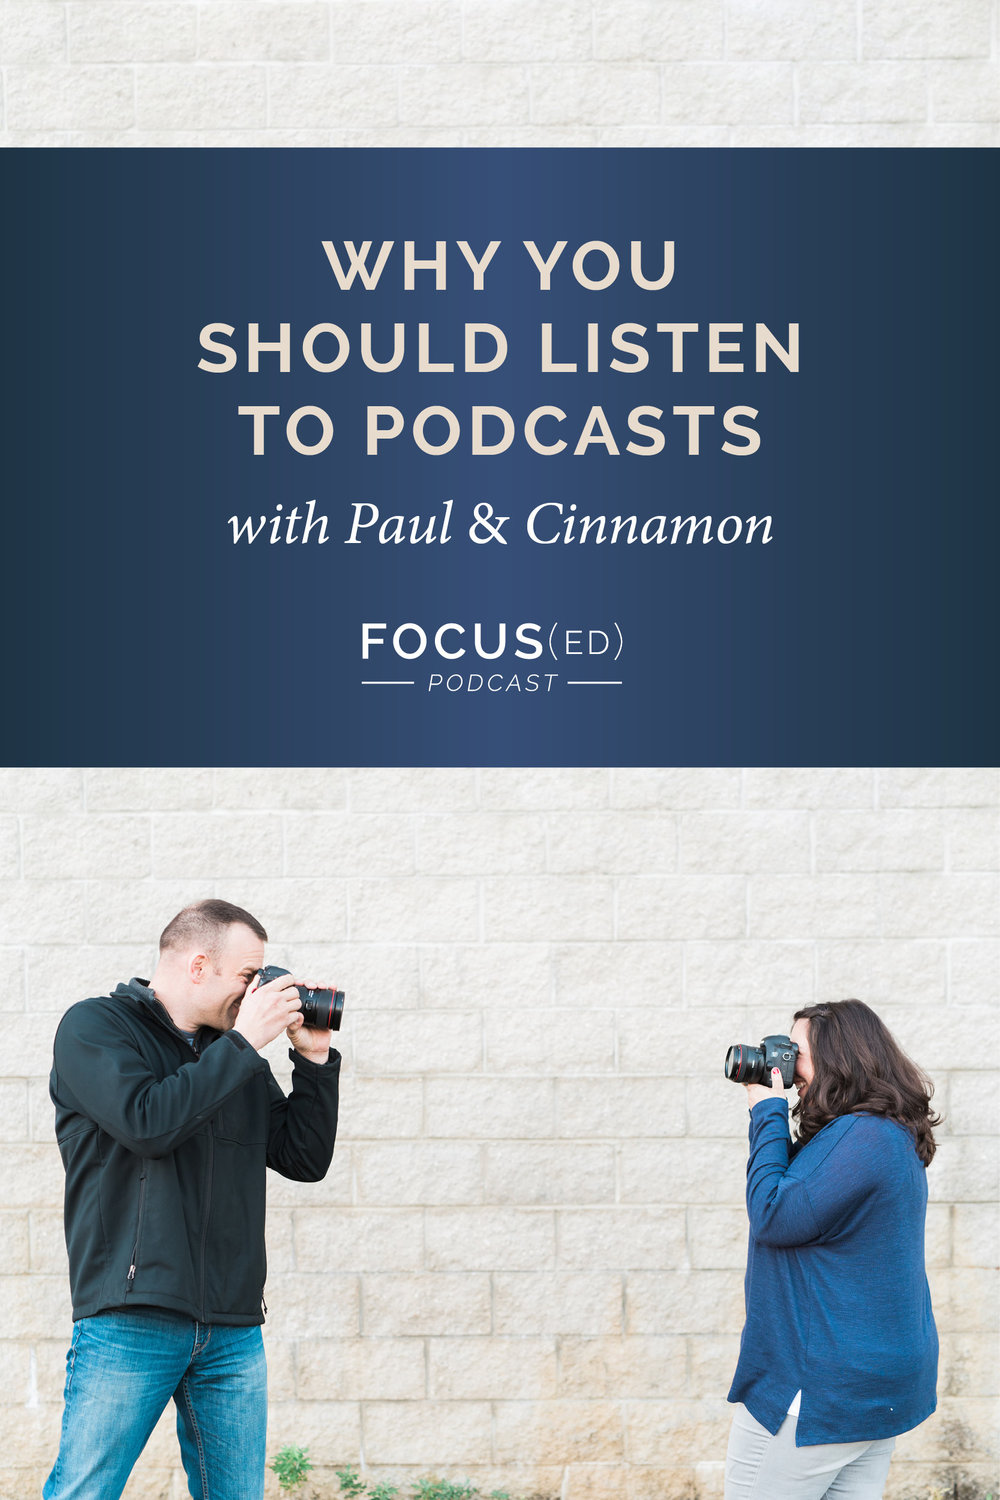 Podcasts are a great way to learn on the go.  |  Focus(ed) Podcast